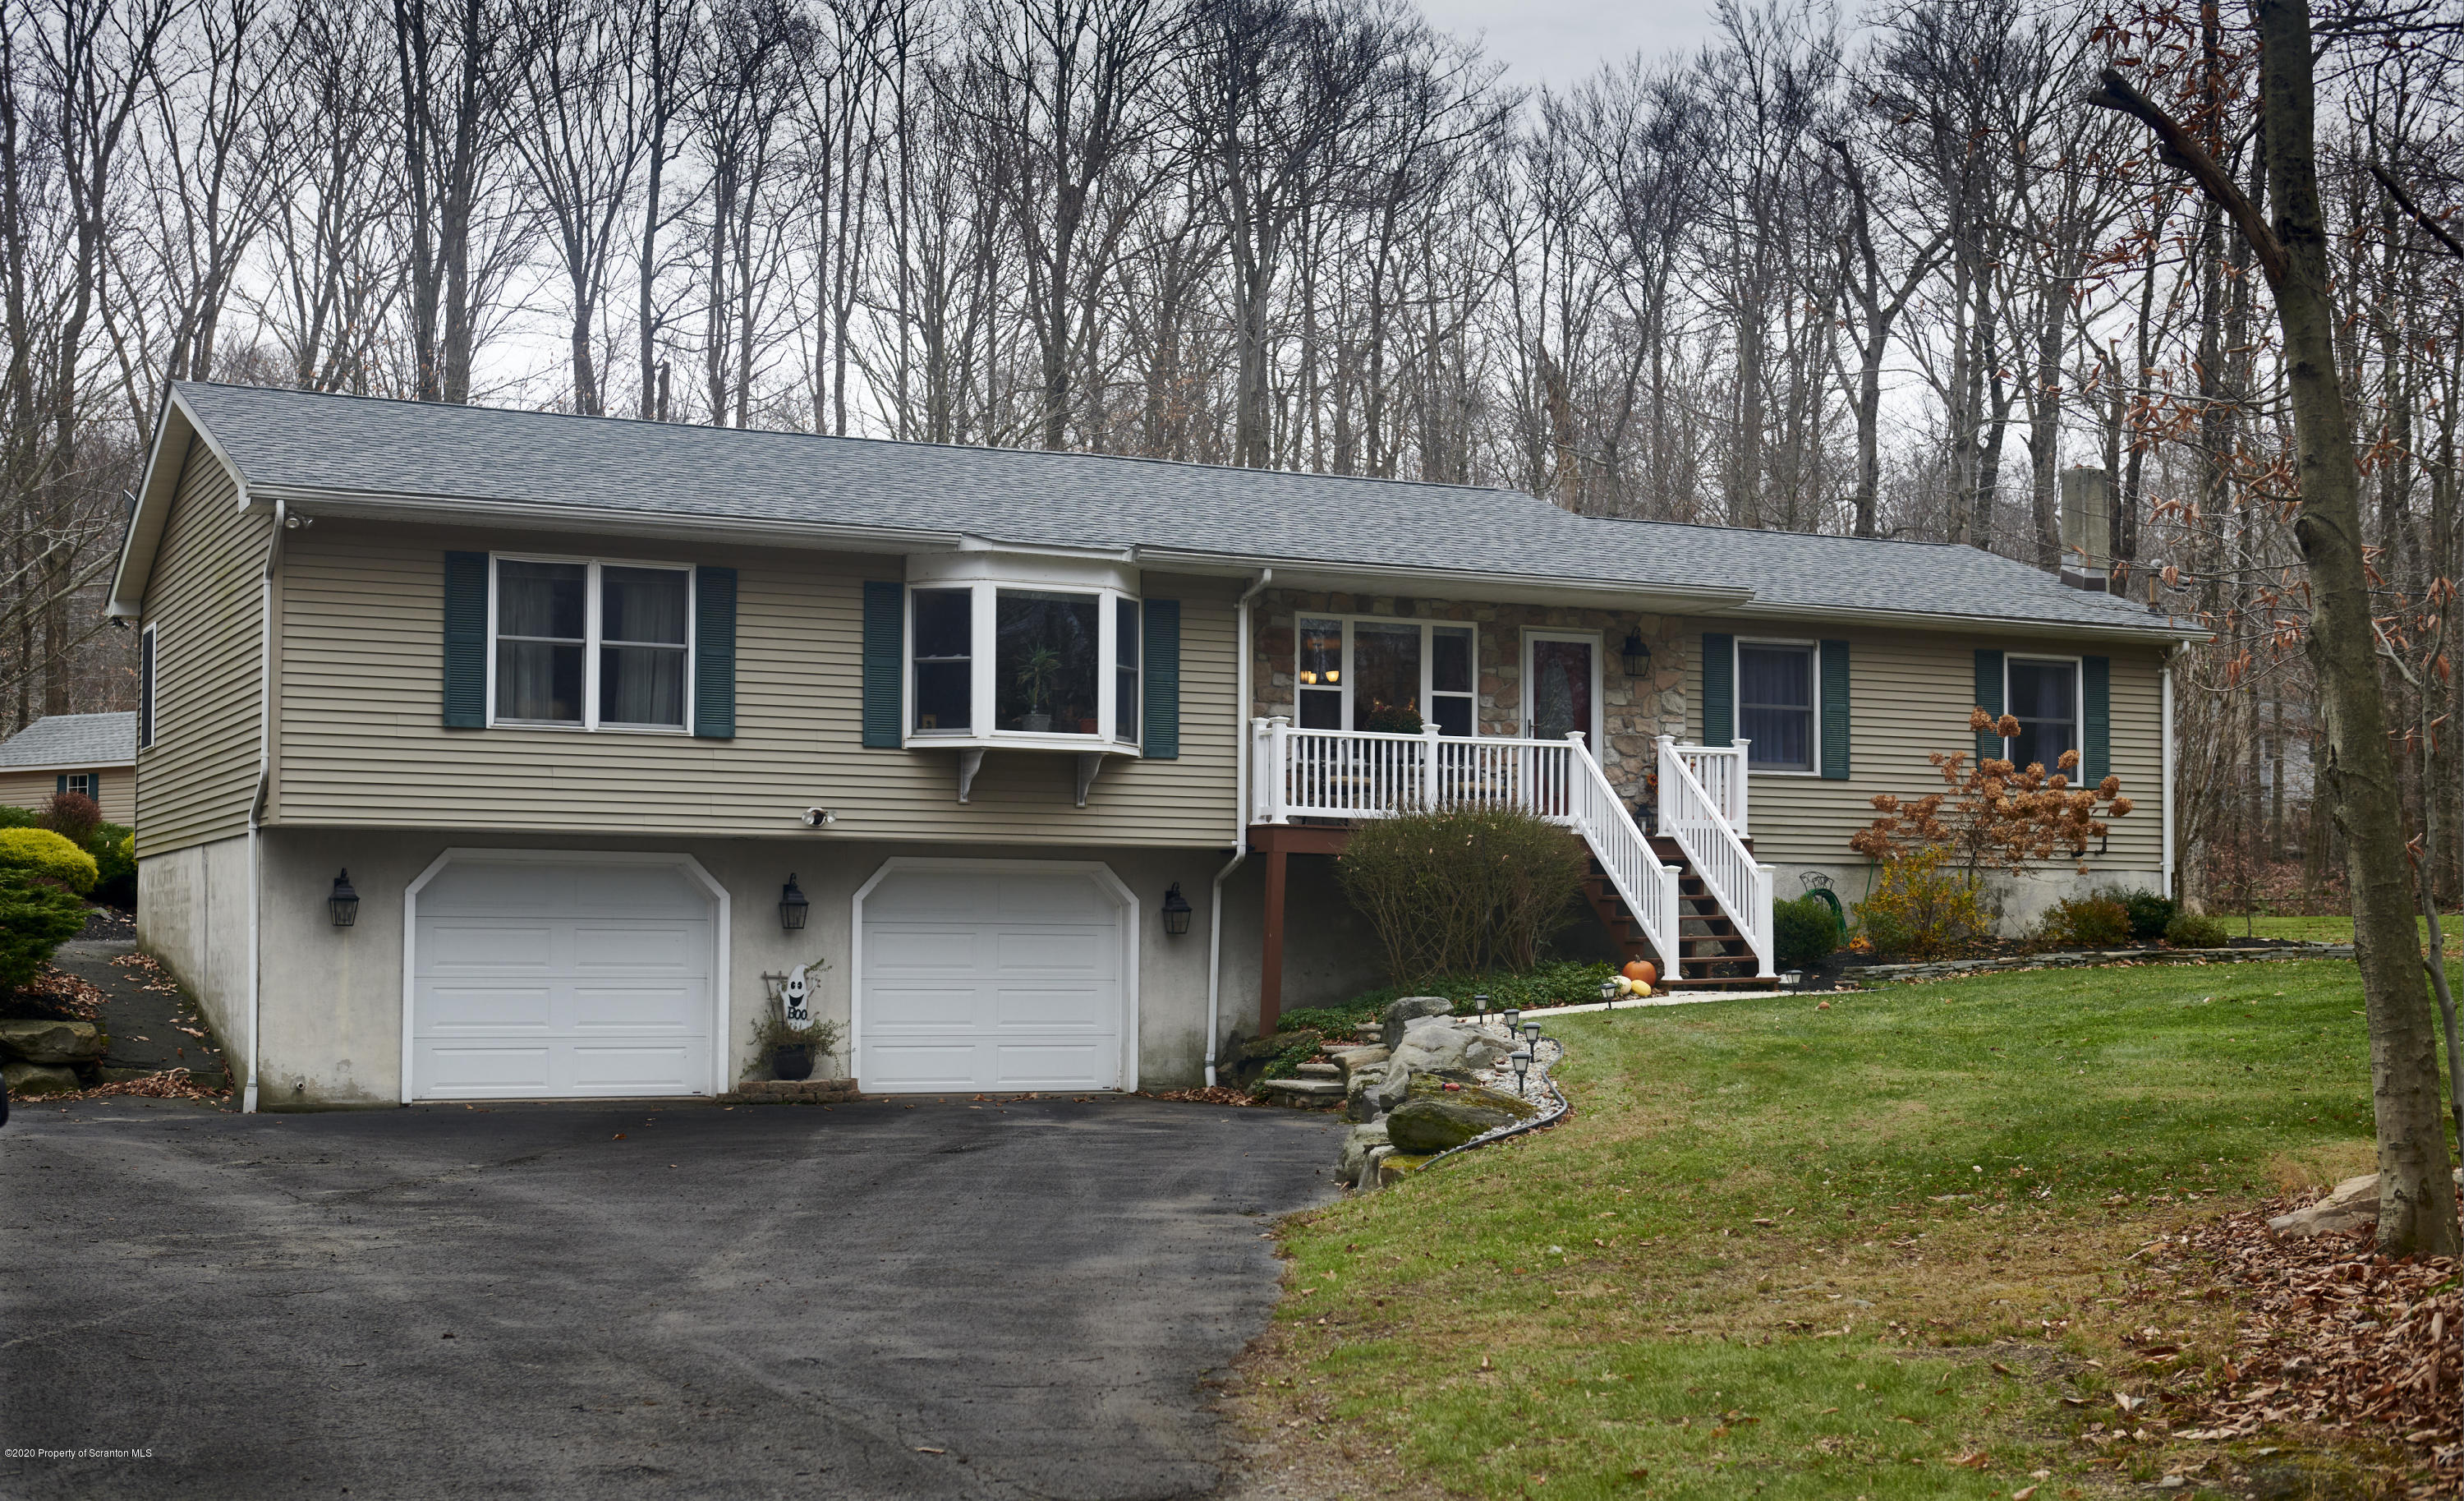 36 Solitude Dr, Madison Twp, Pennsylvania 18444, 4 Bedrooms Bedrooms, 10 Rooms Rooms,3 BathroomsBathrooms,Single Family,For Sale,Solitude,20-4904